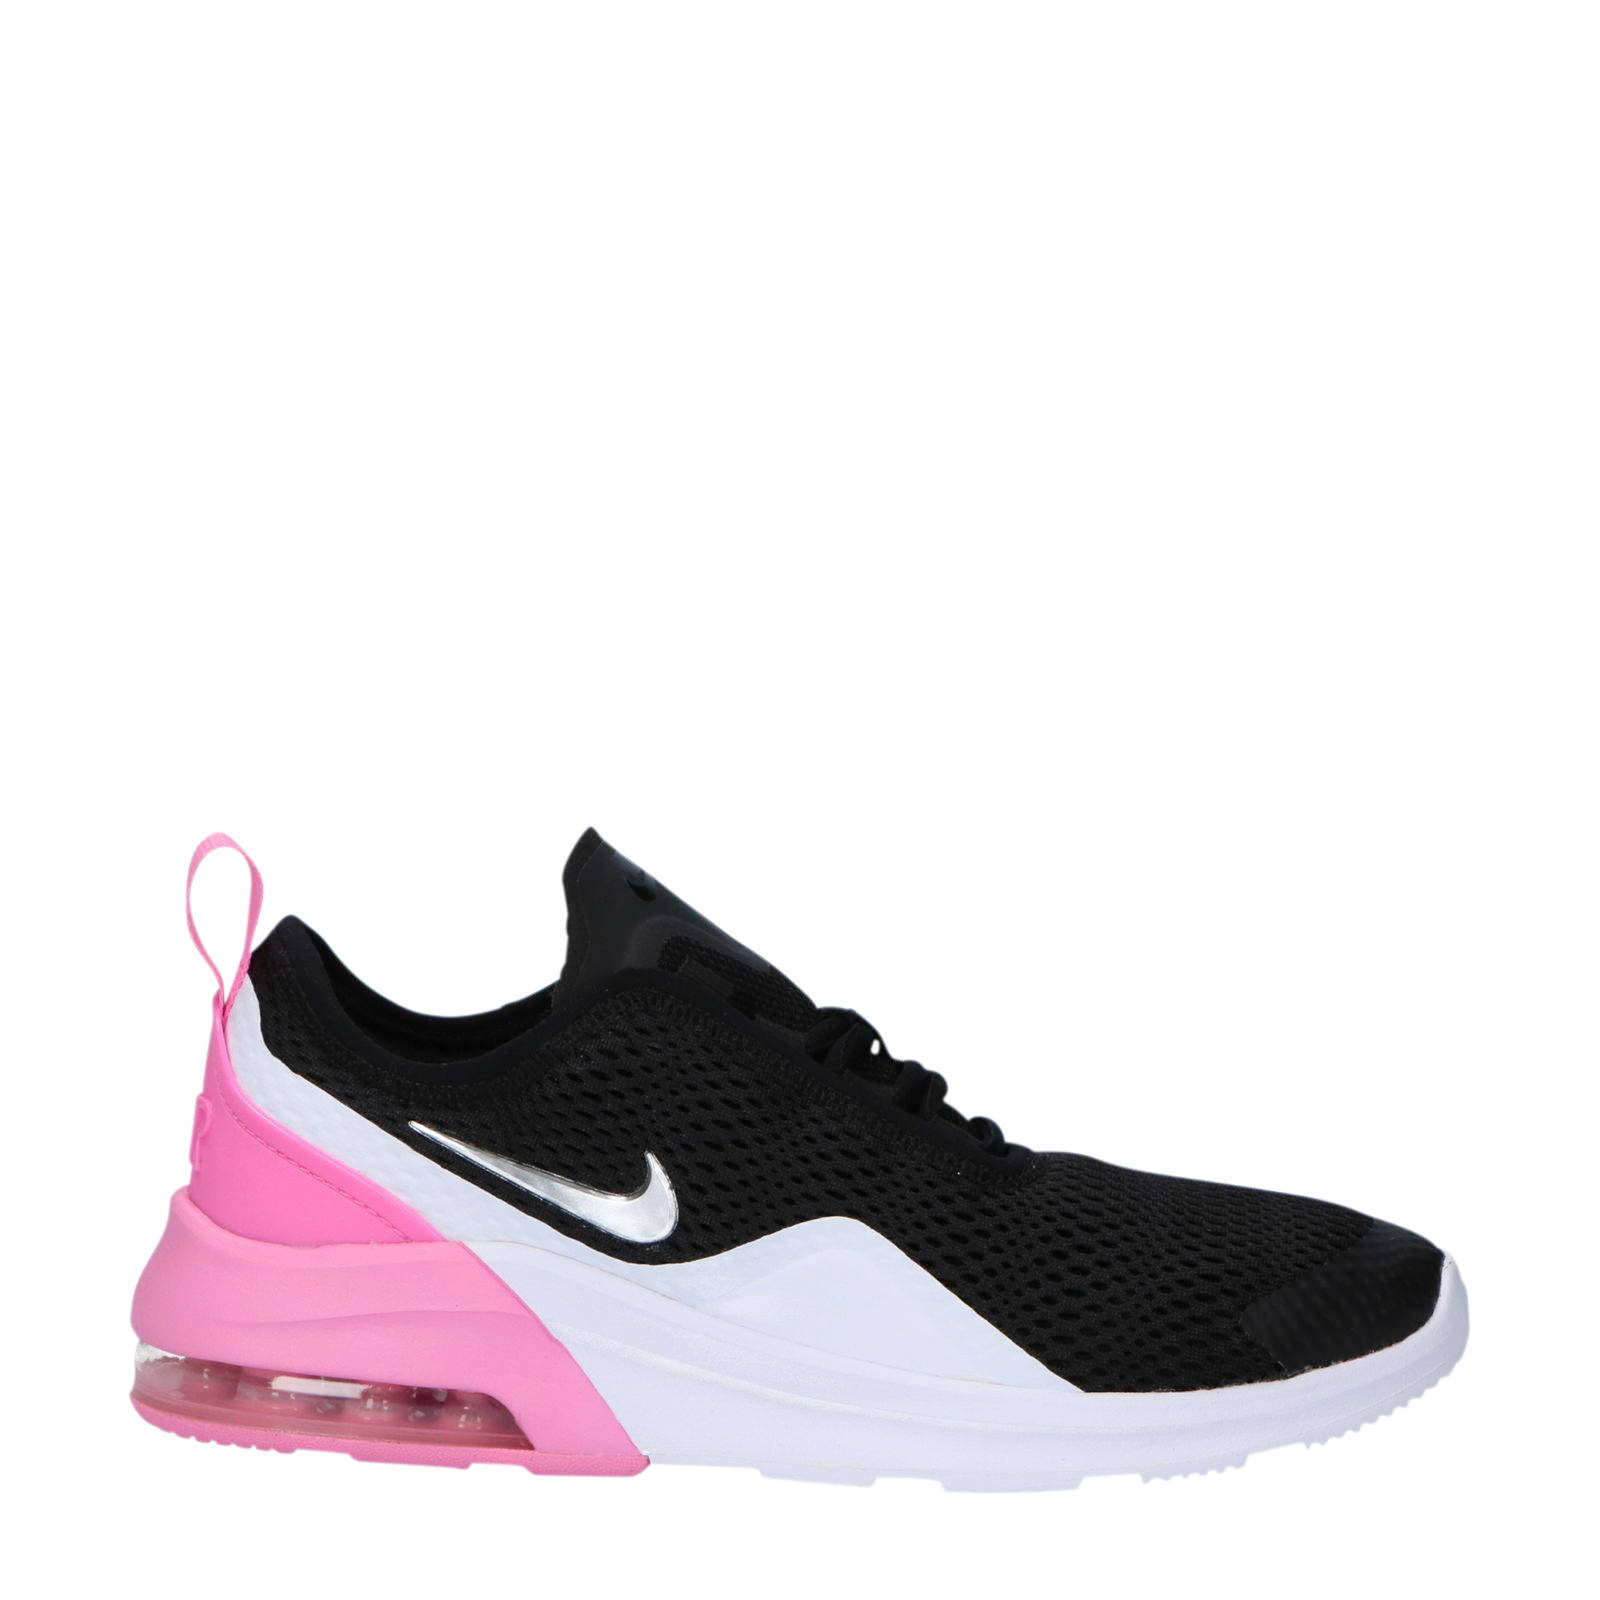 best service bce4c cae41 Nike Air Max Motion 2 sneakers   wehkamp